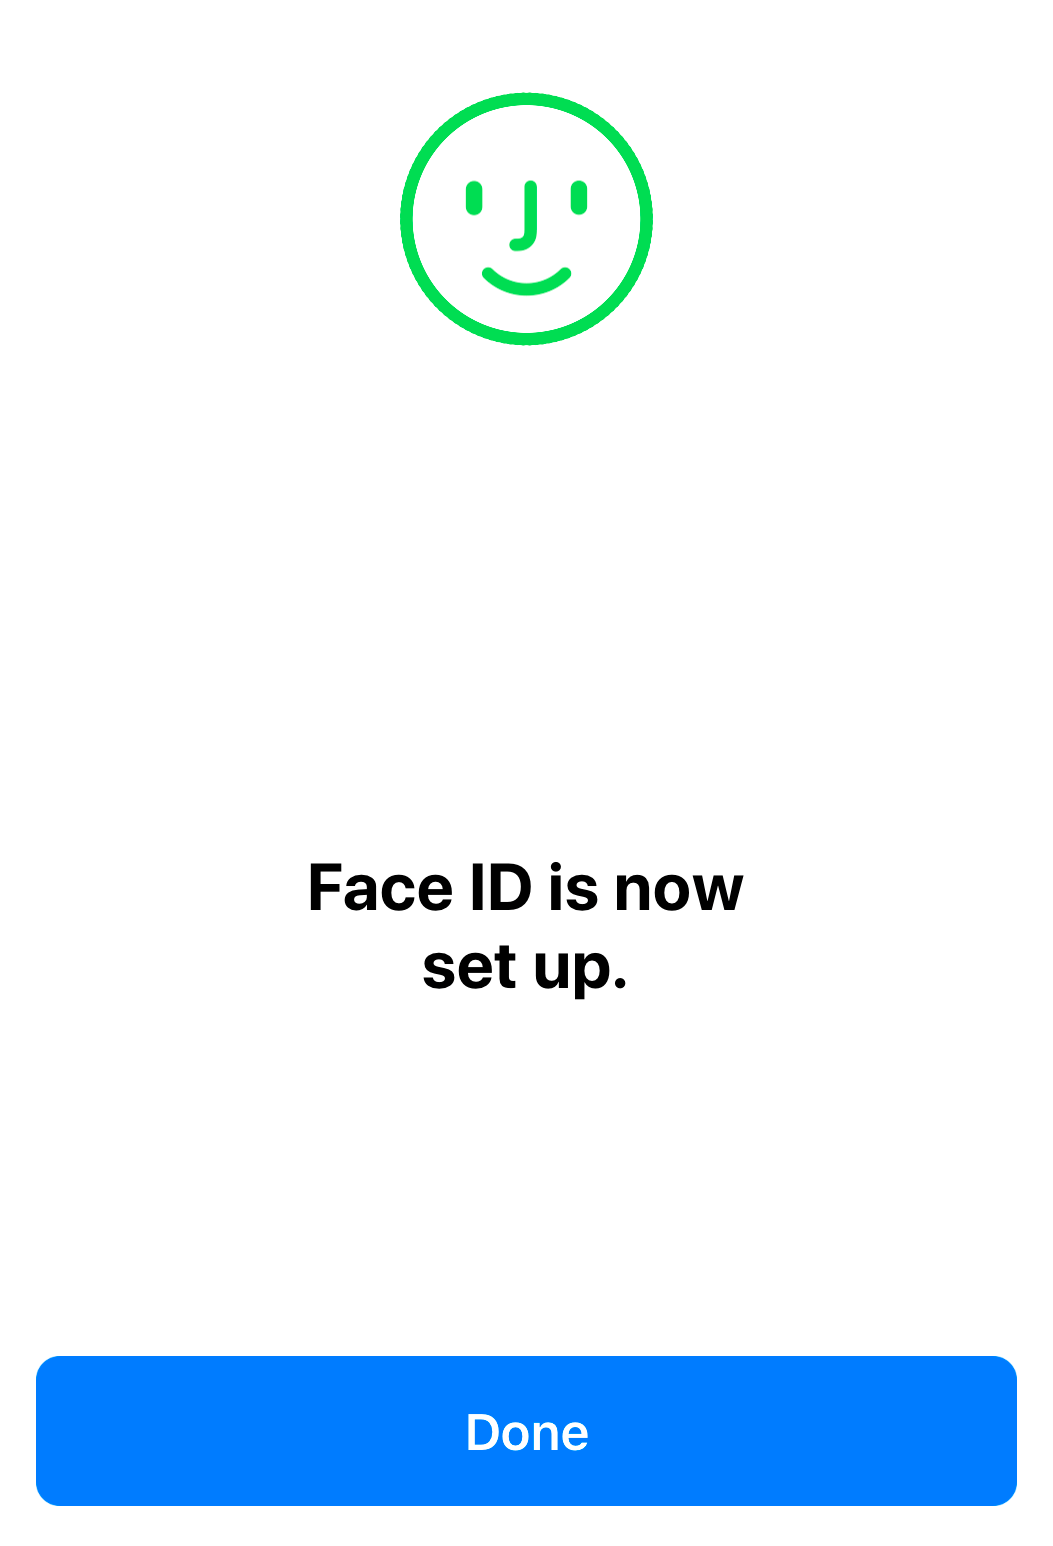 Face ID setup complete screen displaying a done button.